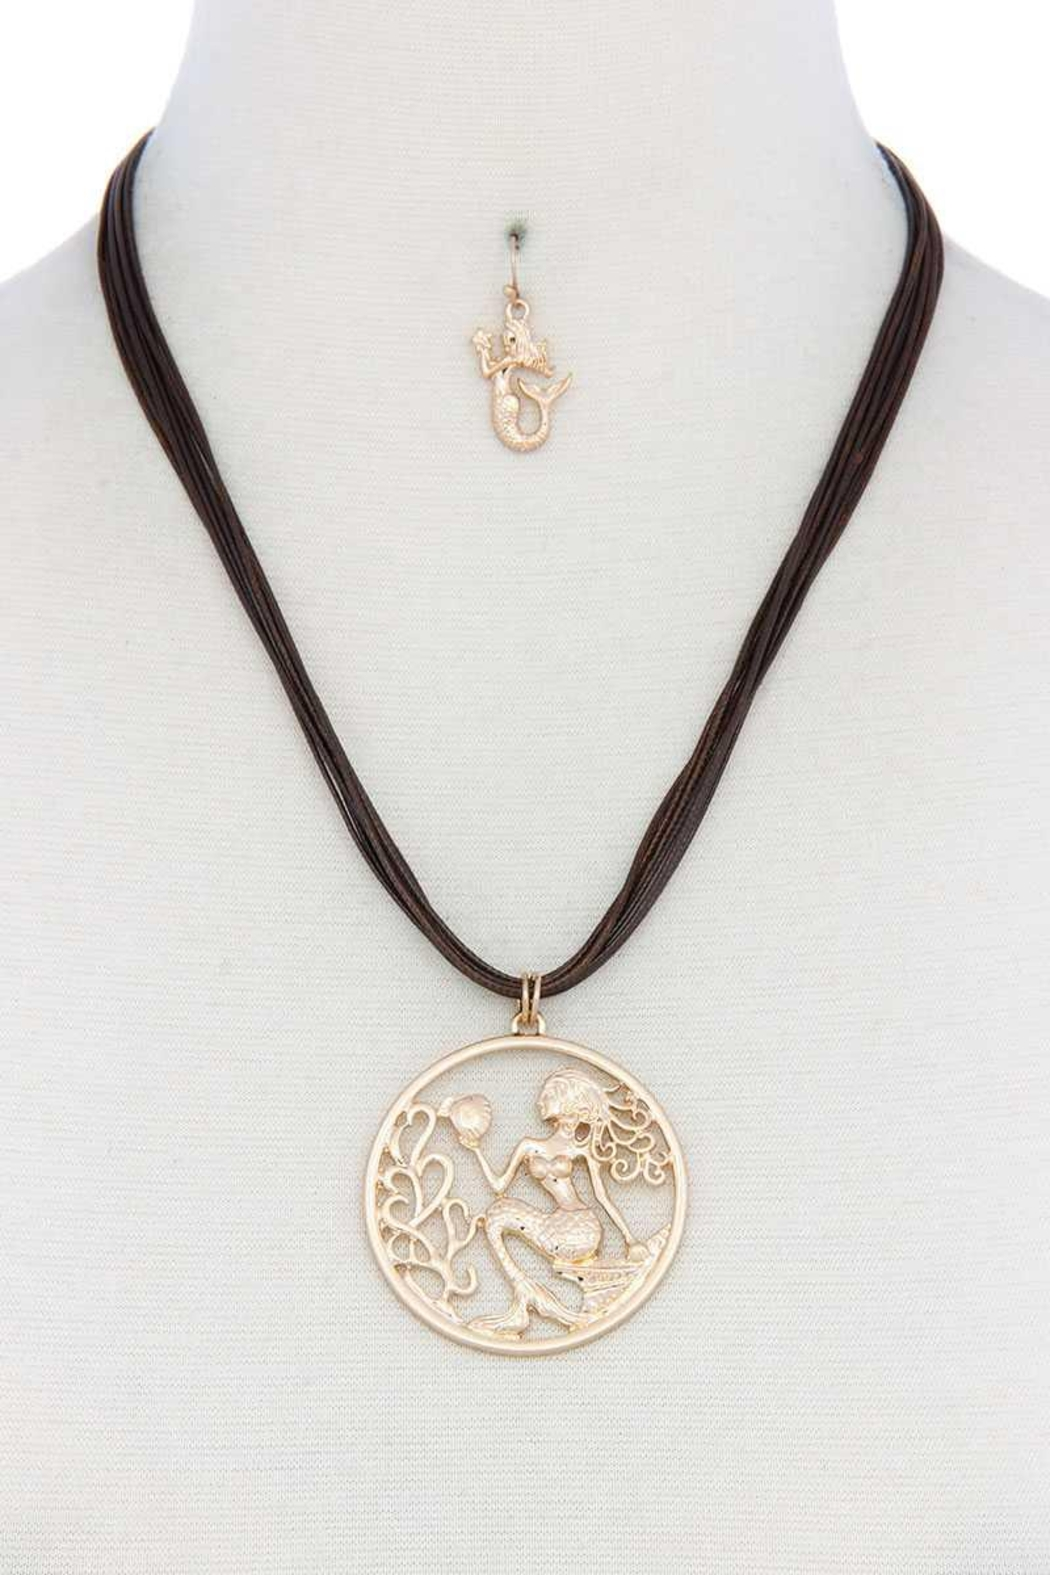 Nadya's Closet Mermaid Pendant Pu Leather Necklace - Main Image